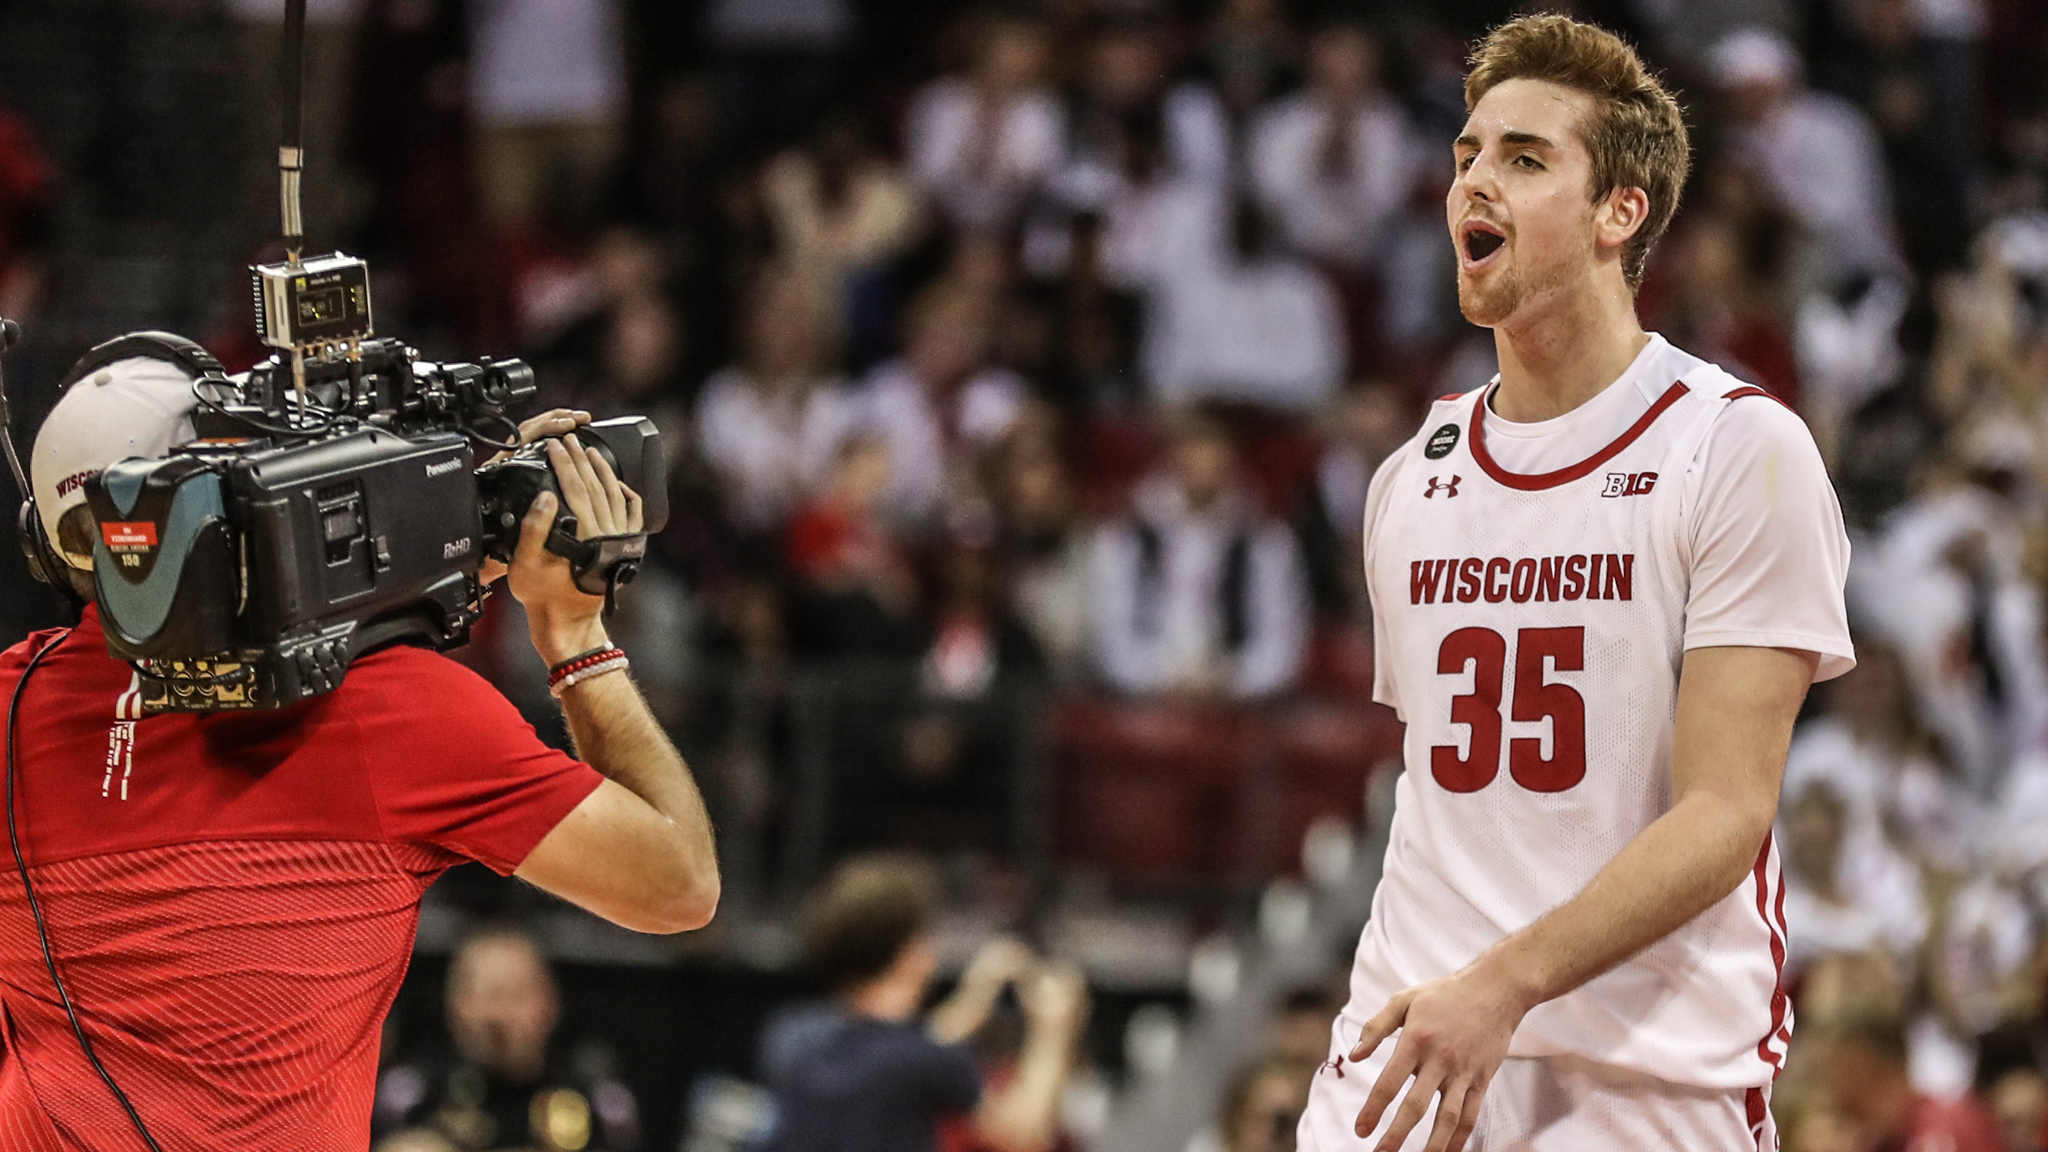 Basketball Opponent Pregame Glimpse: Wisconsin Badgers